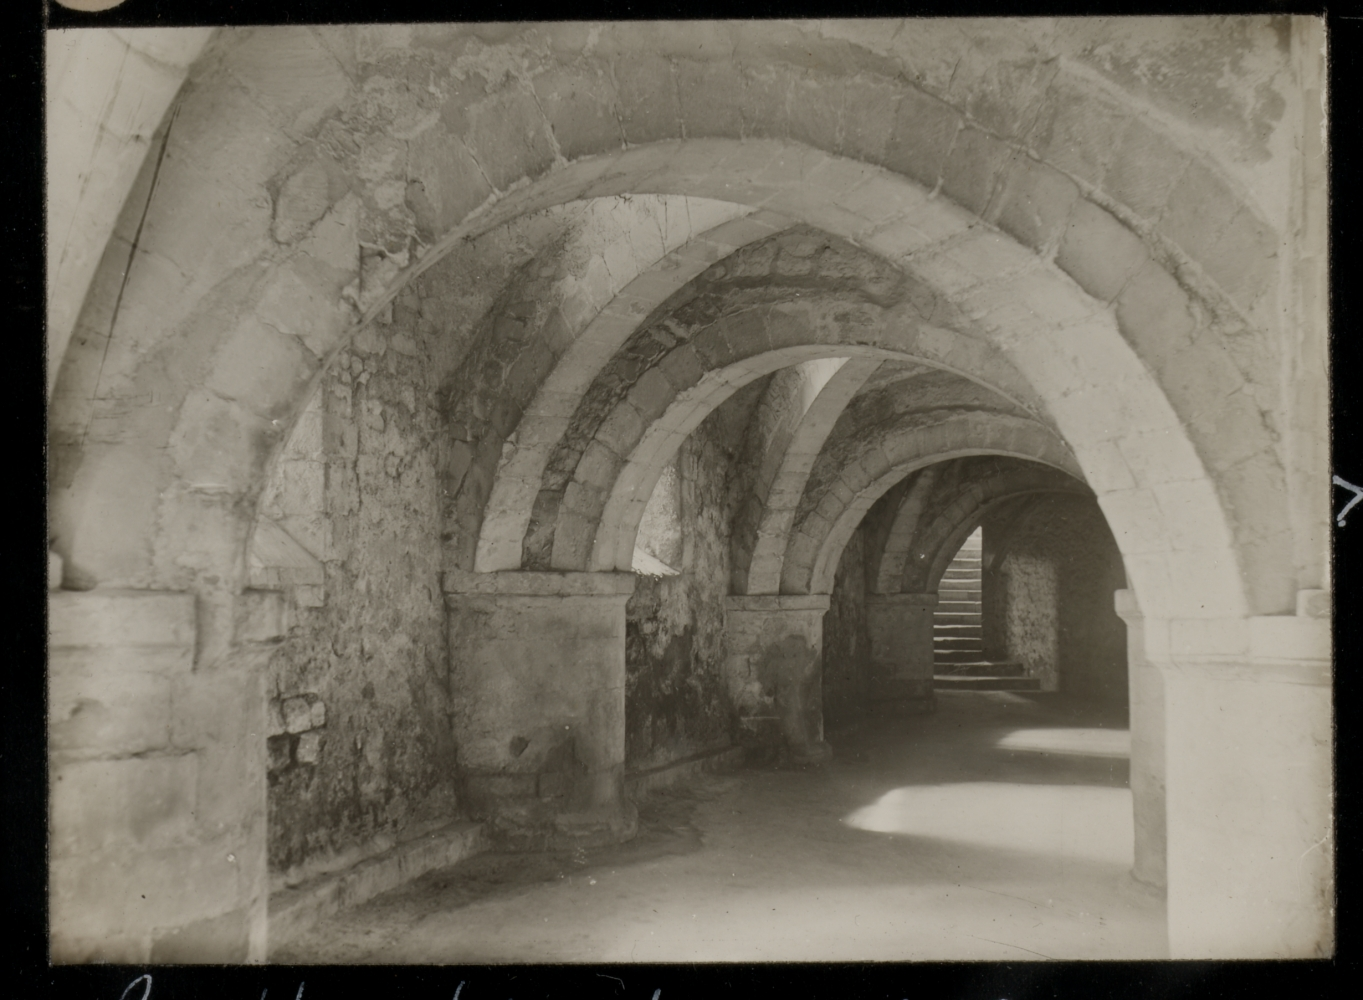 """Frederick H. EVANS (English, 1853-1943) """"Gloucester Cathedral. Crypt and steps out"""", 1890 Lantern slide 5.1 x 6.9 cm on 8.2 x 8.2 cm glass slide Signed """"F. H. Evans"""", titled and dated with """"83."""" and """"X"""" in white ink on the paper mask"""